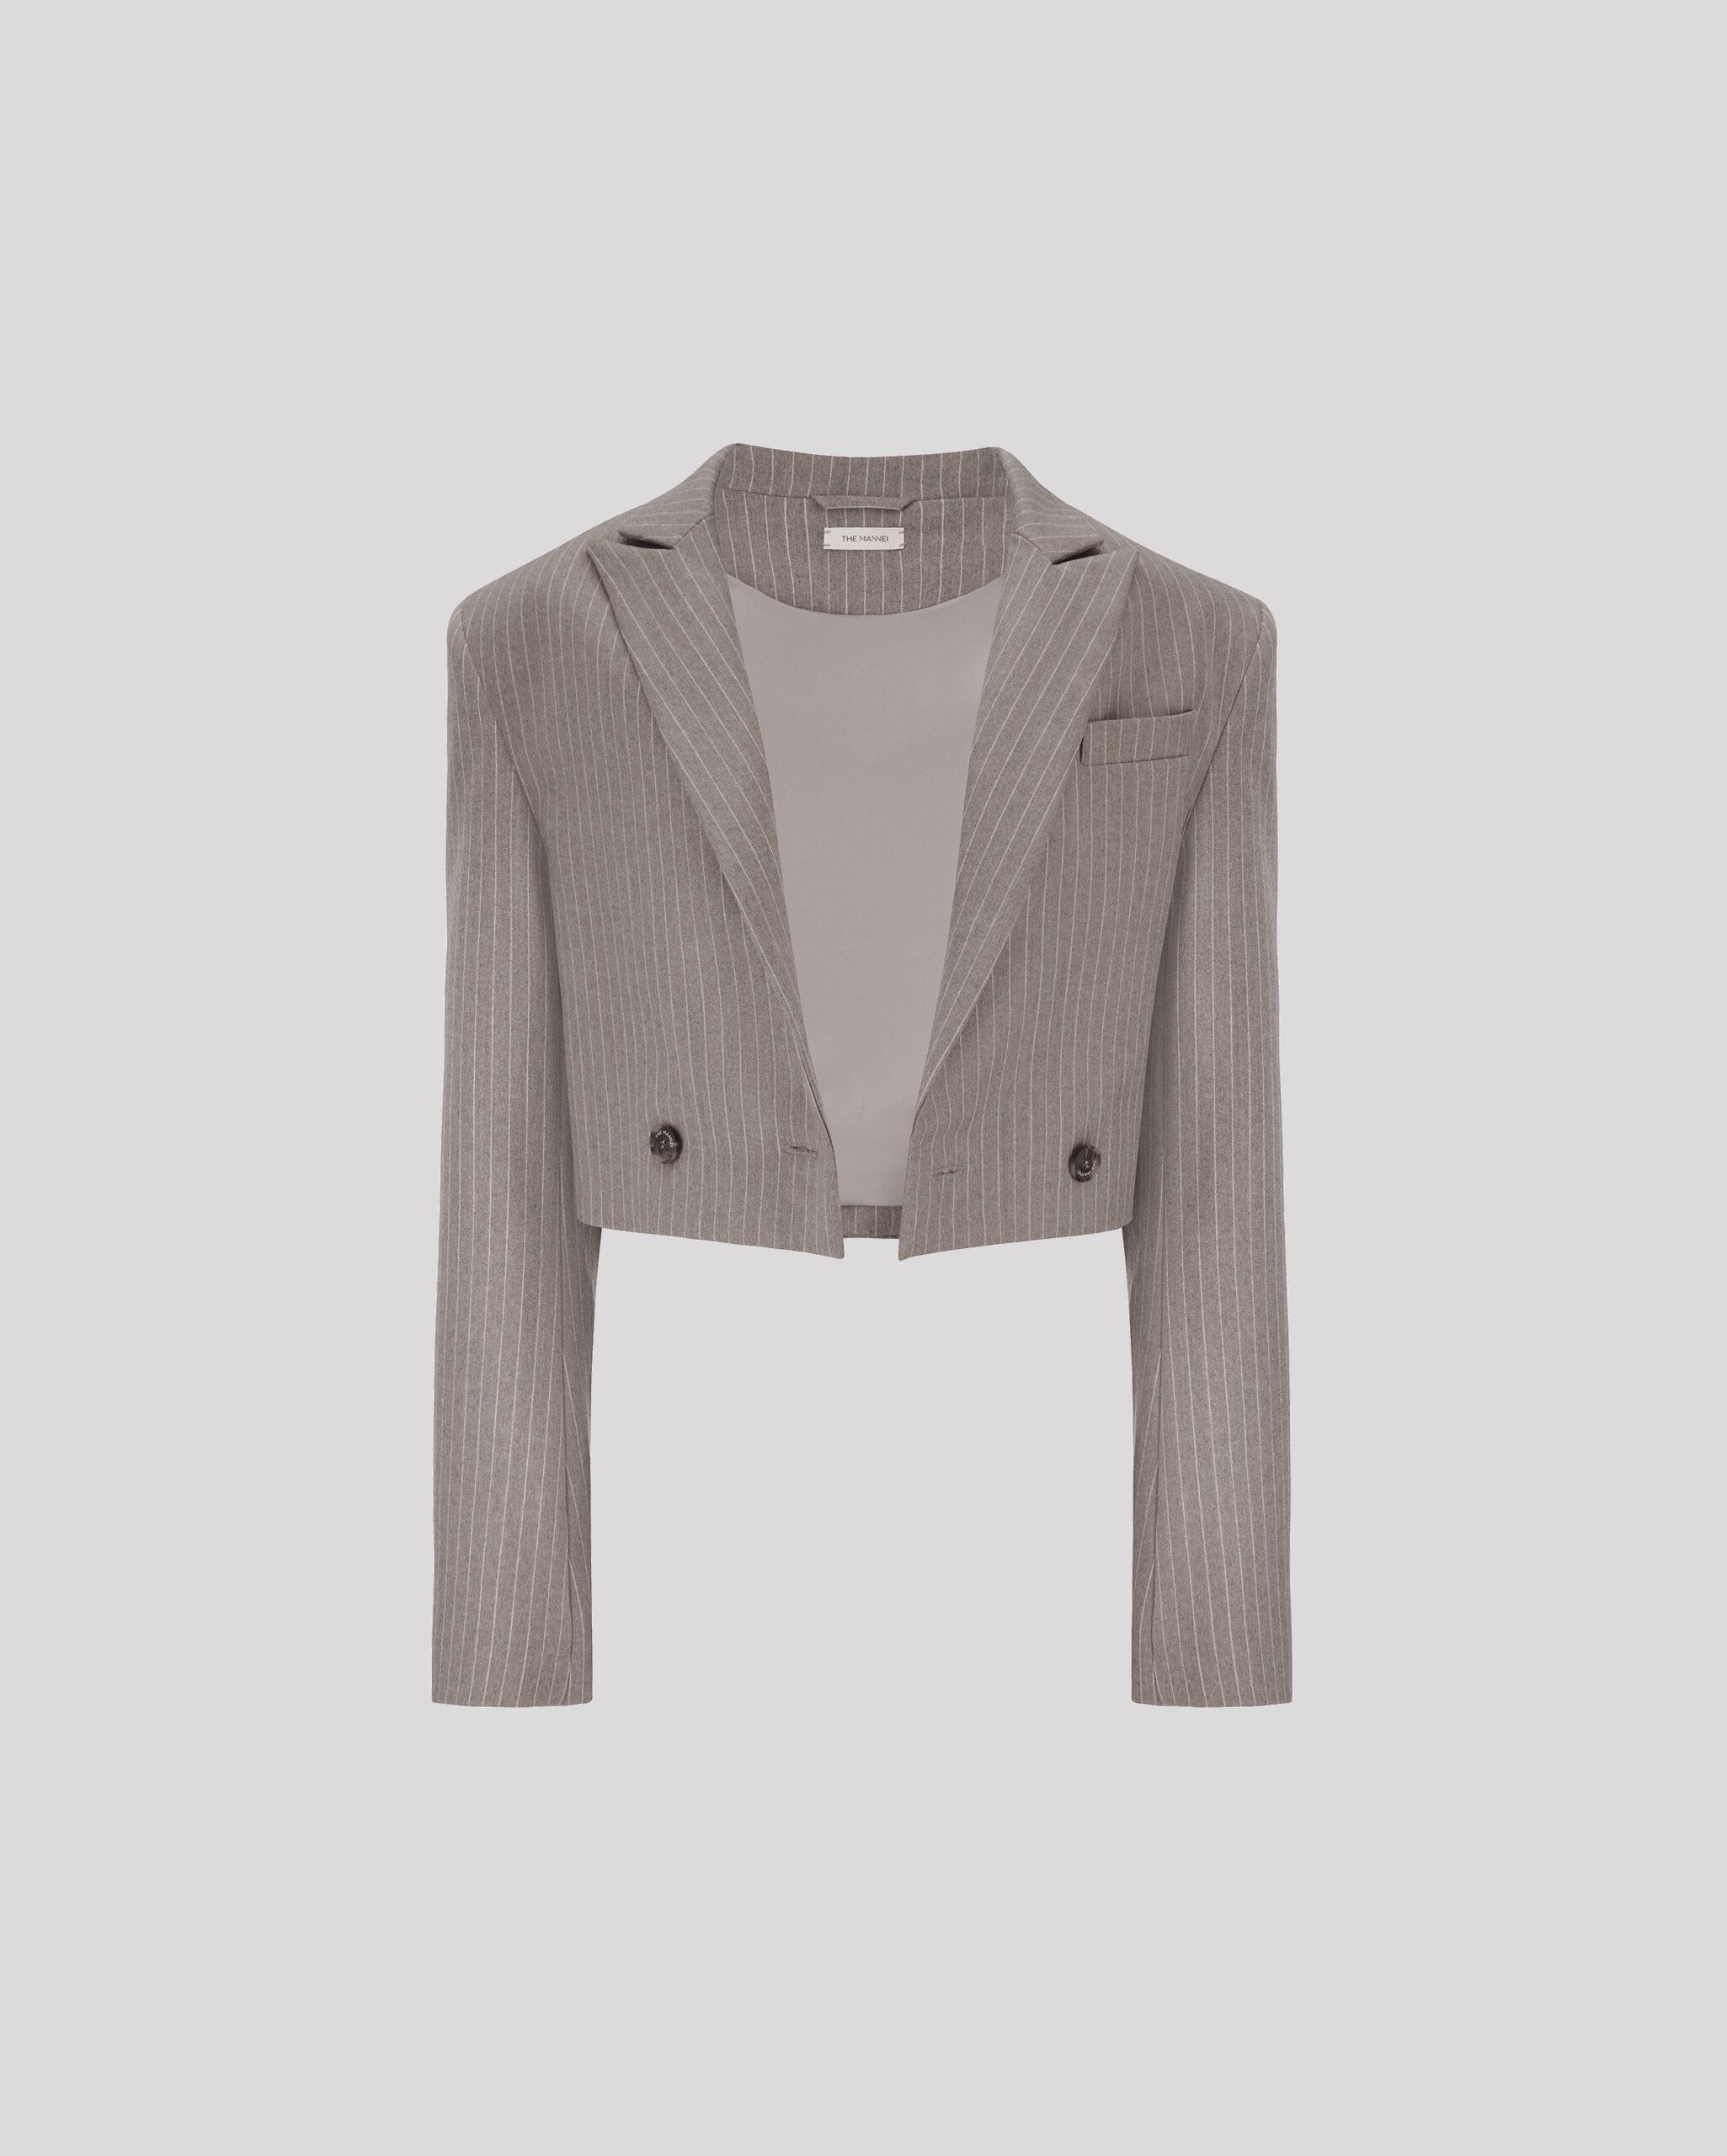 Cropped oversized blazer by PRATO IN TAUPE, available on themannei.com Hailey Baldwin Outerwear Exact Product